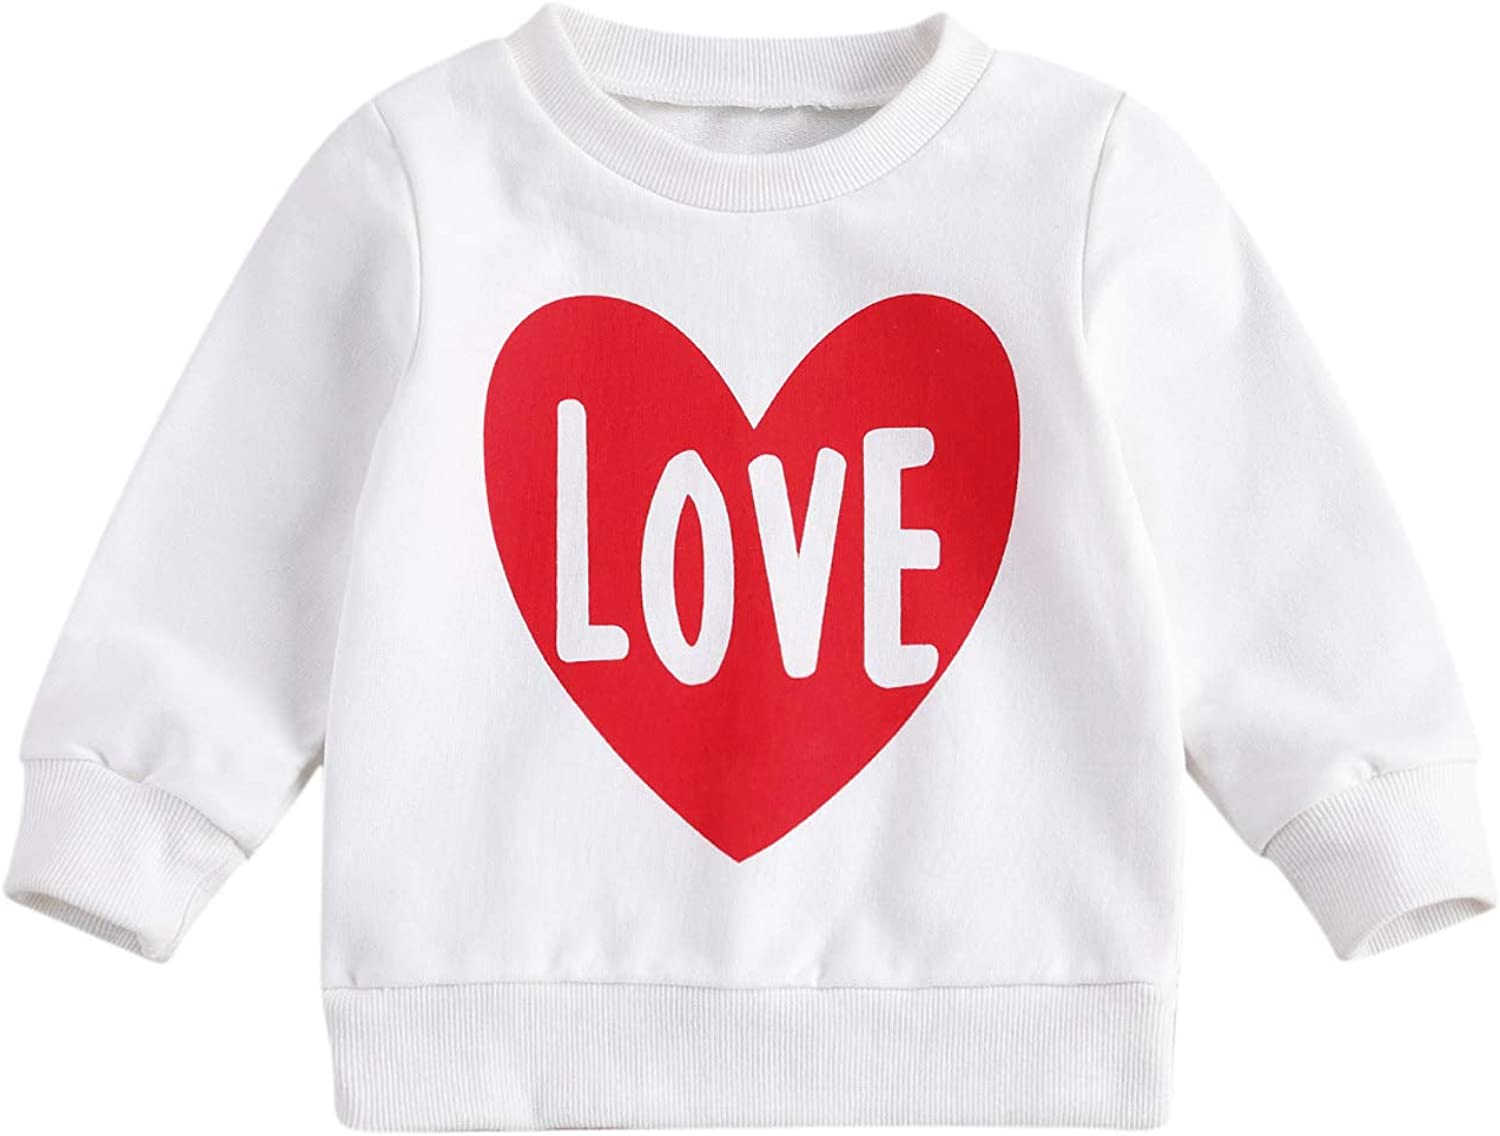 Infant Toddler Baby Girl Long Sleeve Pullover Sweatshirt Letter Print Hoodie Tops Fall Outfit Casual Clothes